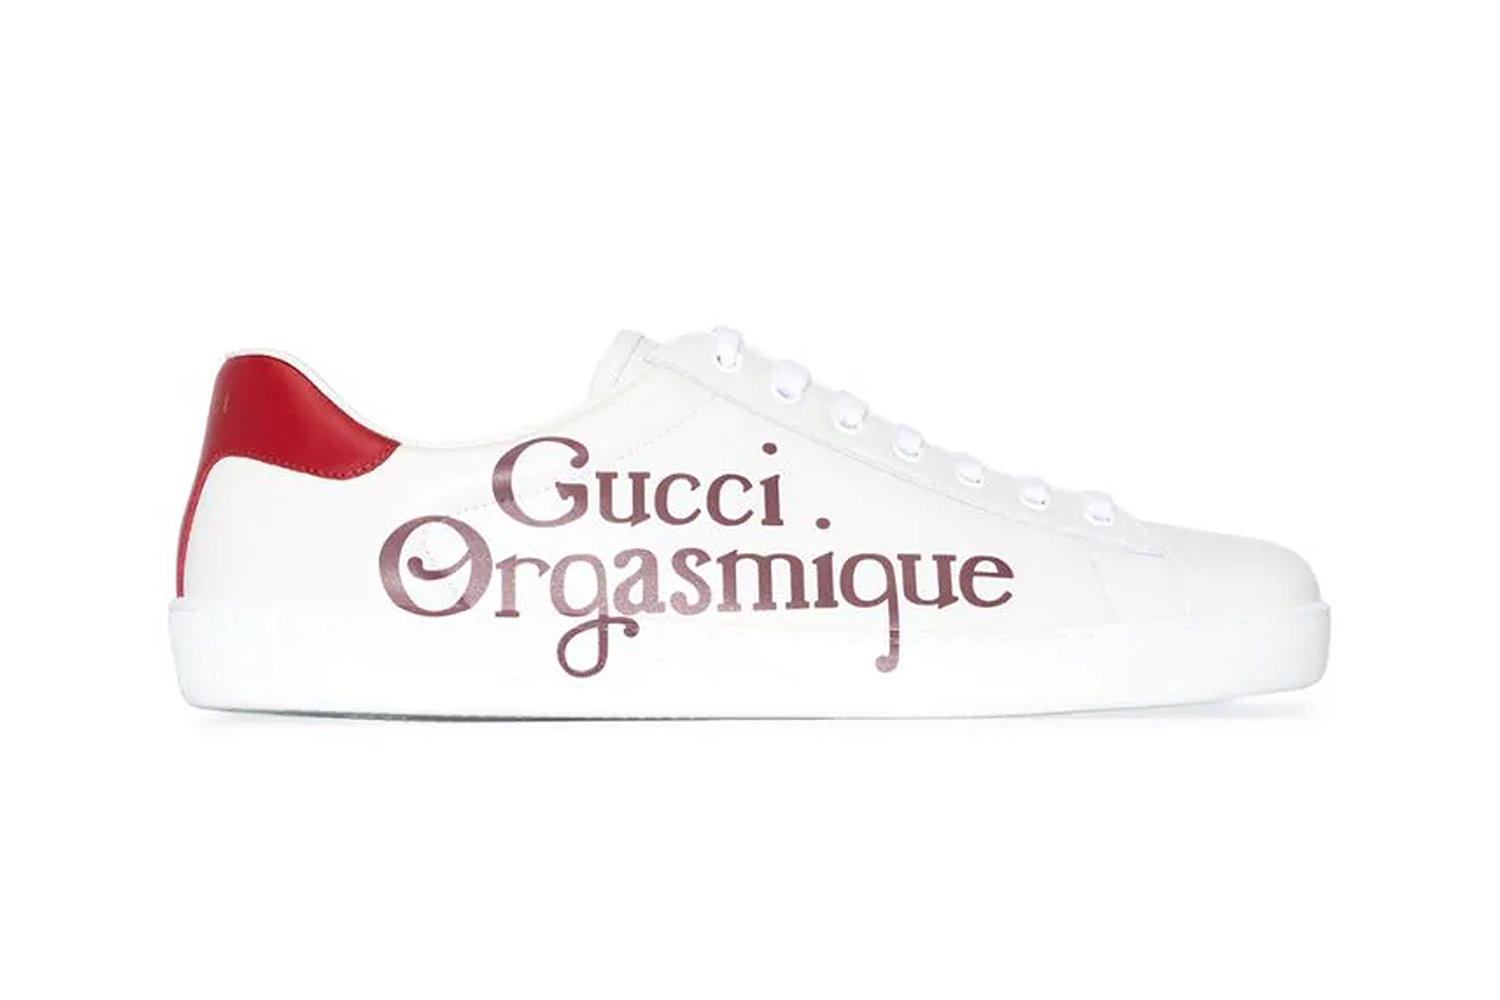 Gucci Orgasmique Red Low Top Ace Sneaker Alessandro Michele shoes kicks footwear low top gucci GG sneakers Italian Luxury